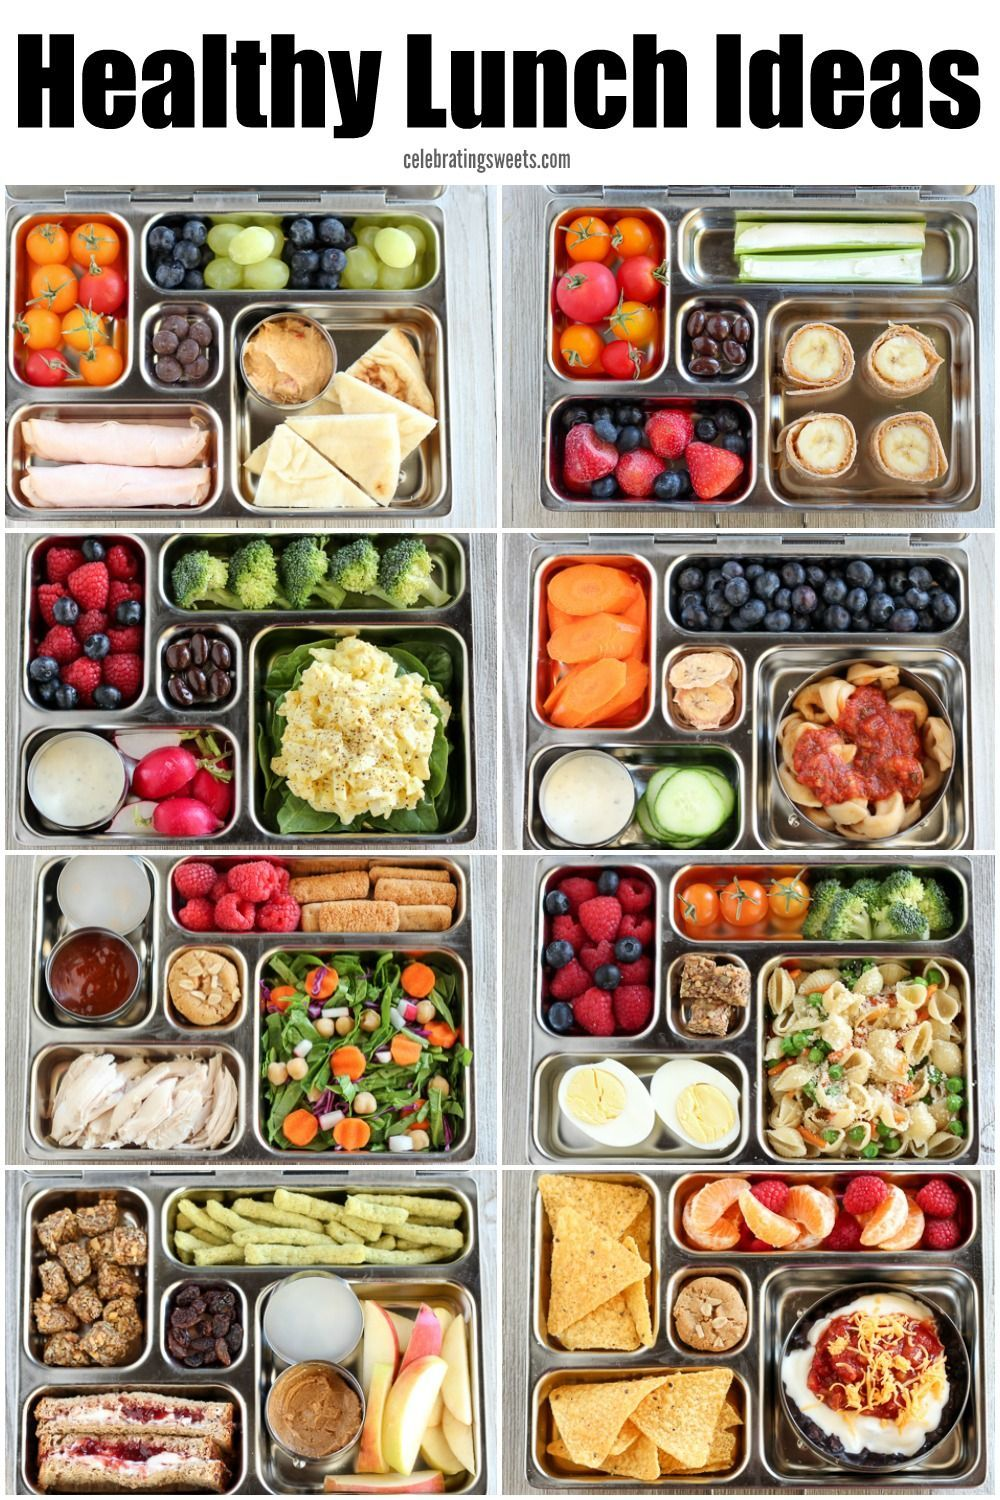 Healthy Lunch Ideas For Kids And Adults Celebrating Sweets In 2020 Easy Healthy Lunches Healthy Lunches For Work Healthy Packed Lunches